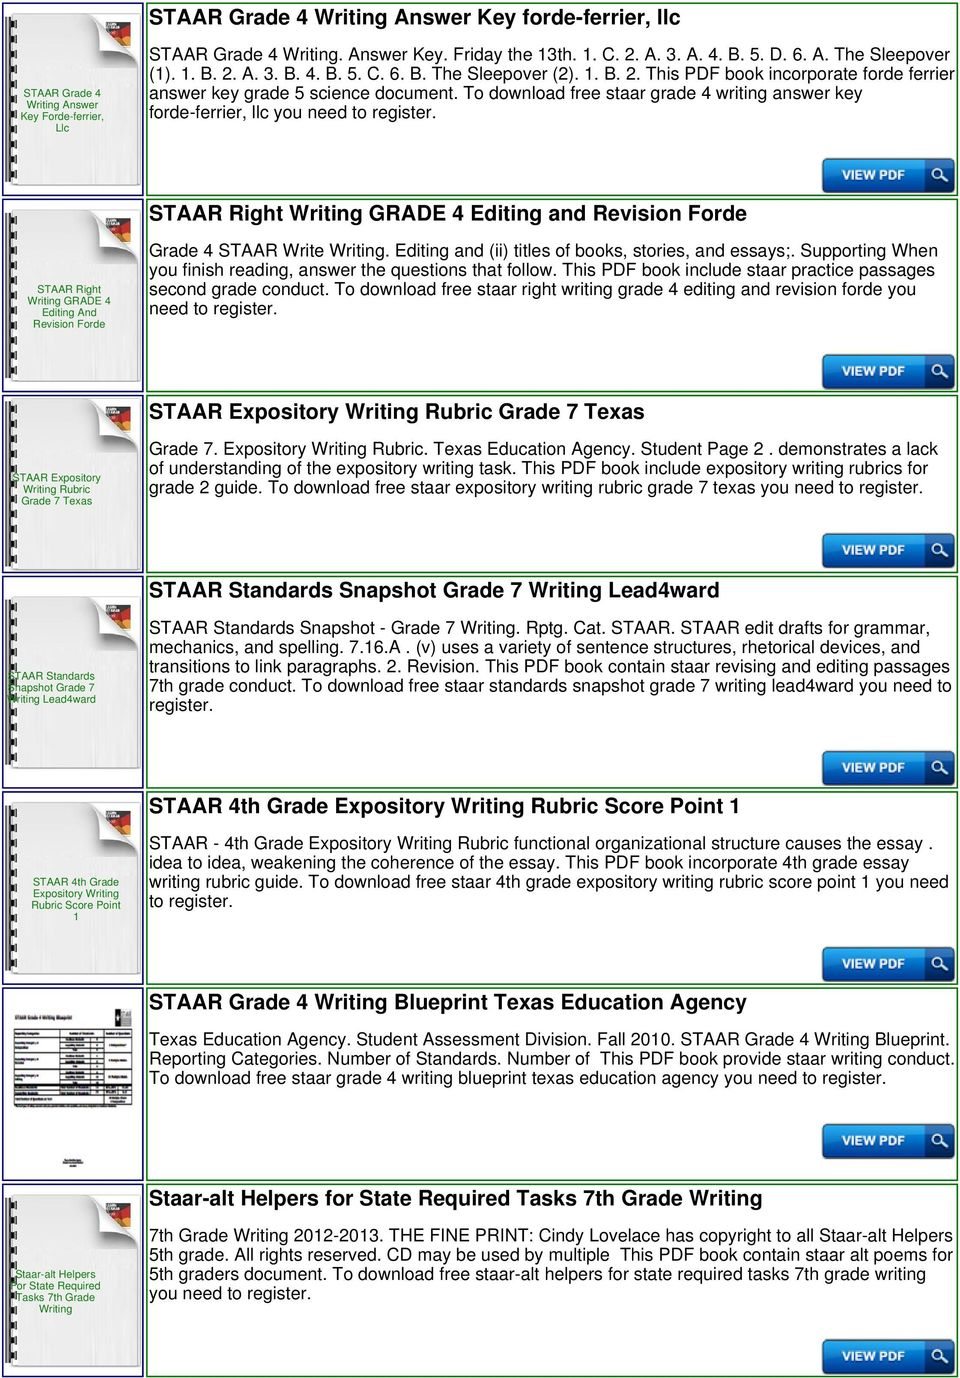 4th grade staar writing lined paper pdf to staar grade 4 writing answer key forde ferrier llc you need